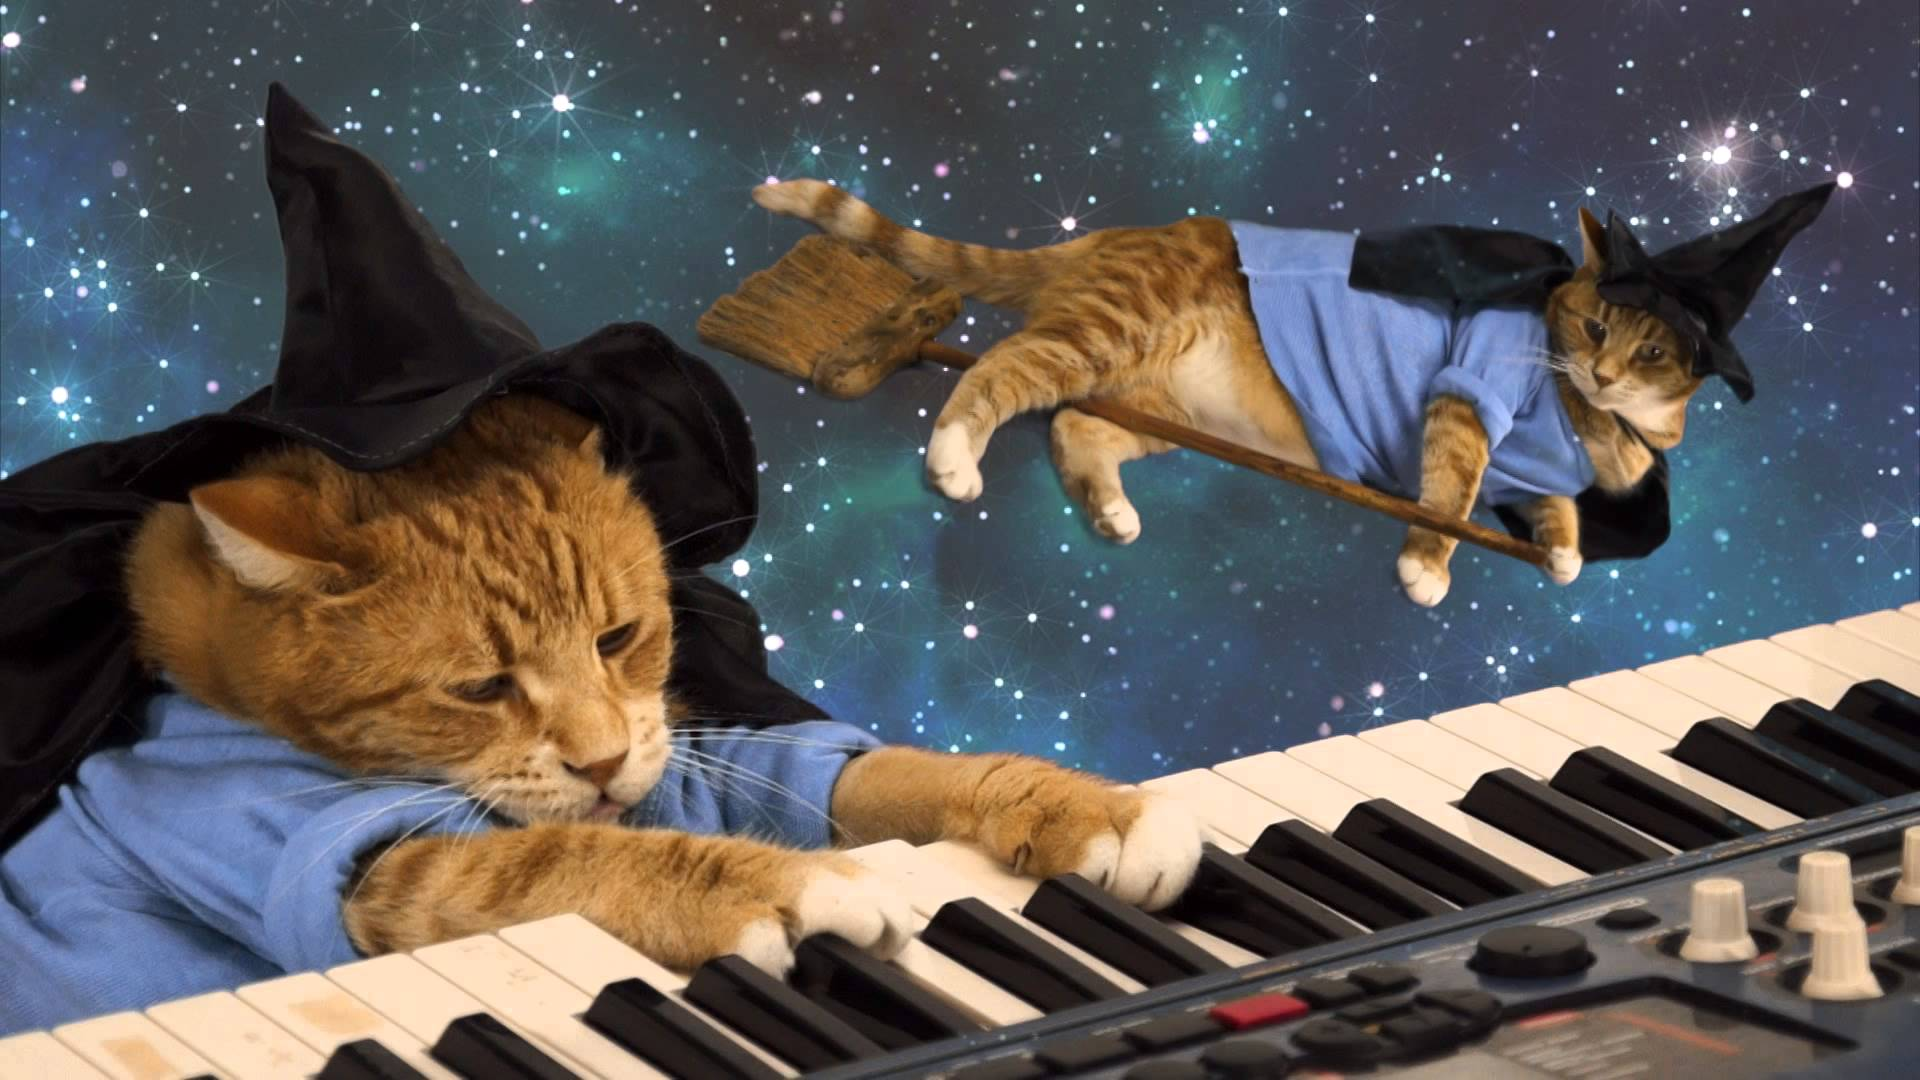 download keyboard cat wallpaper gallery